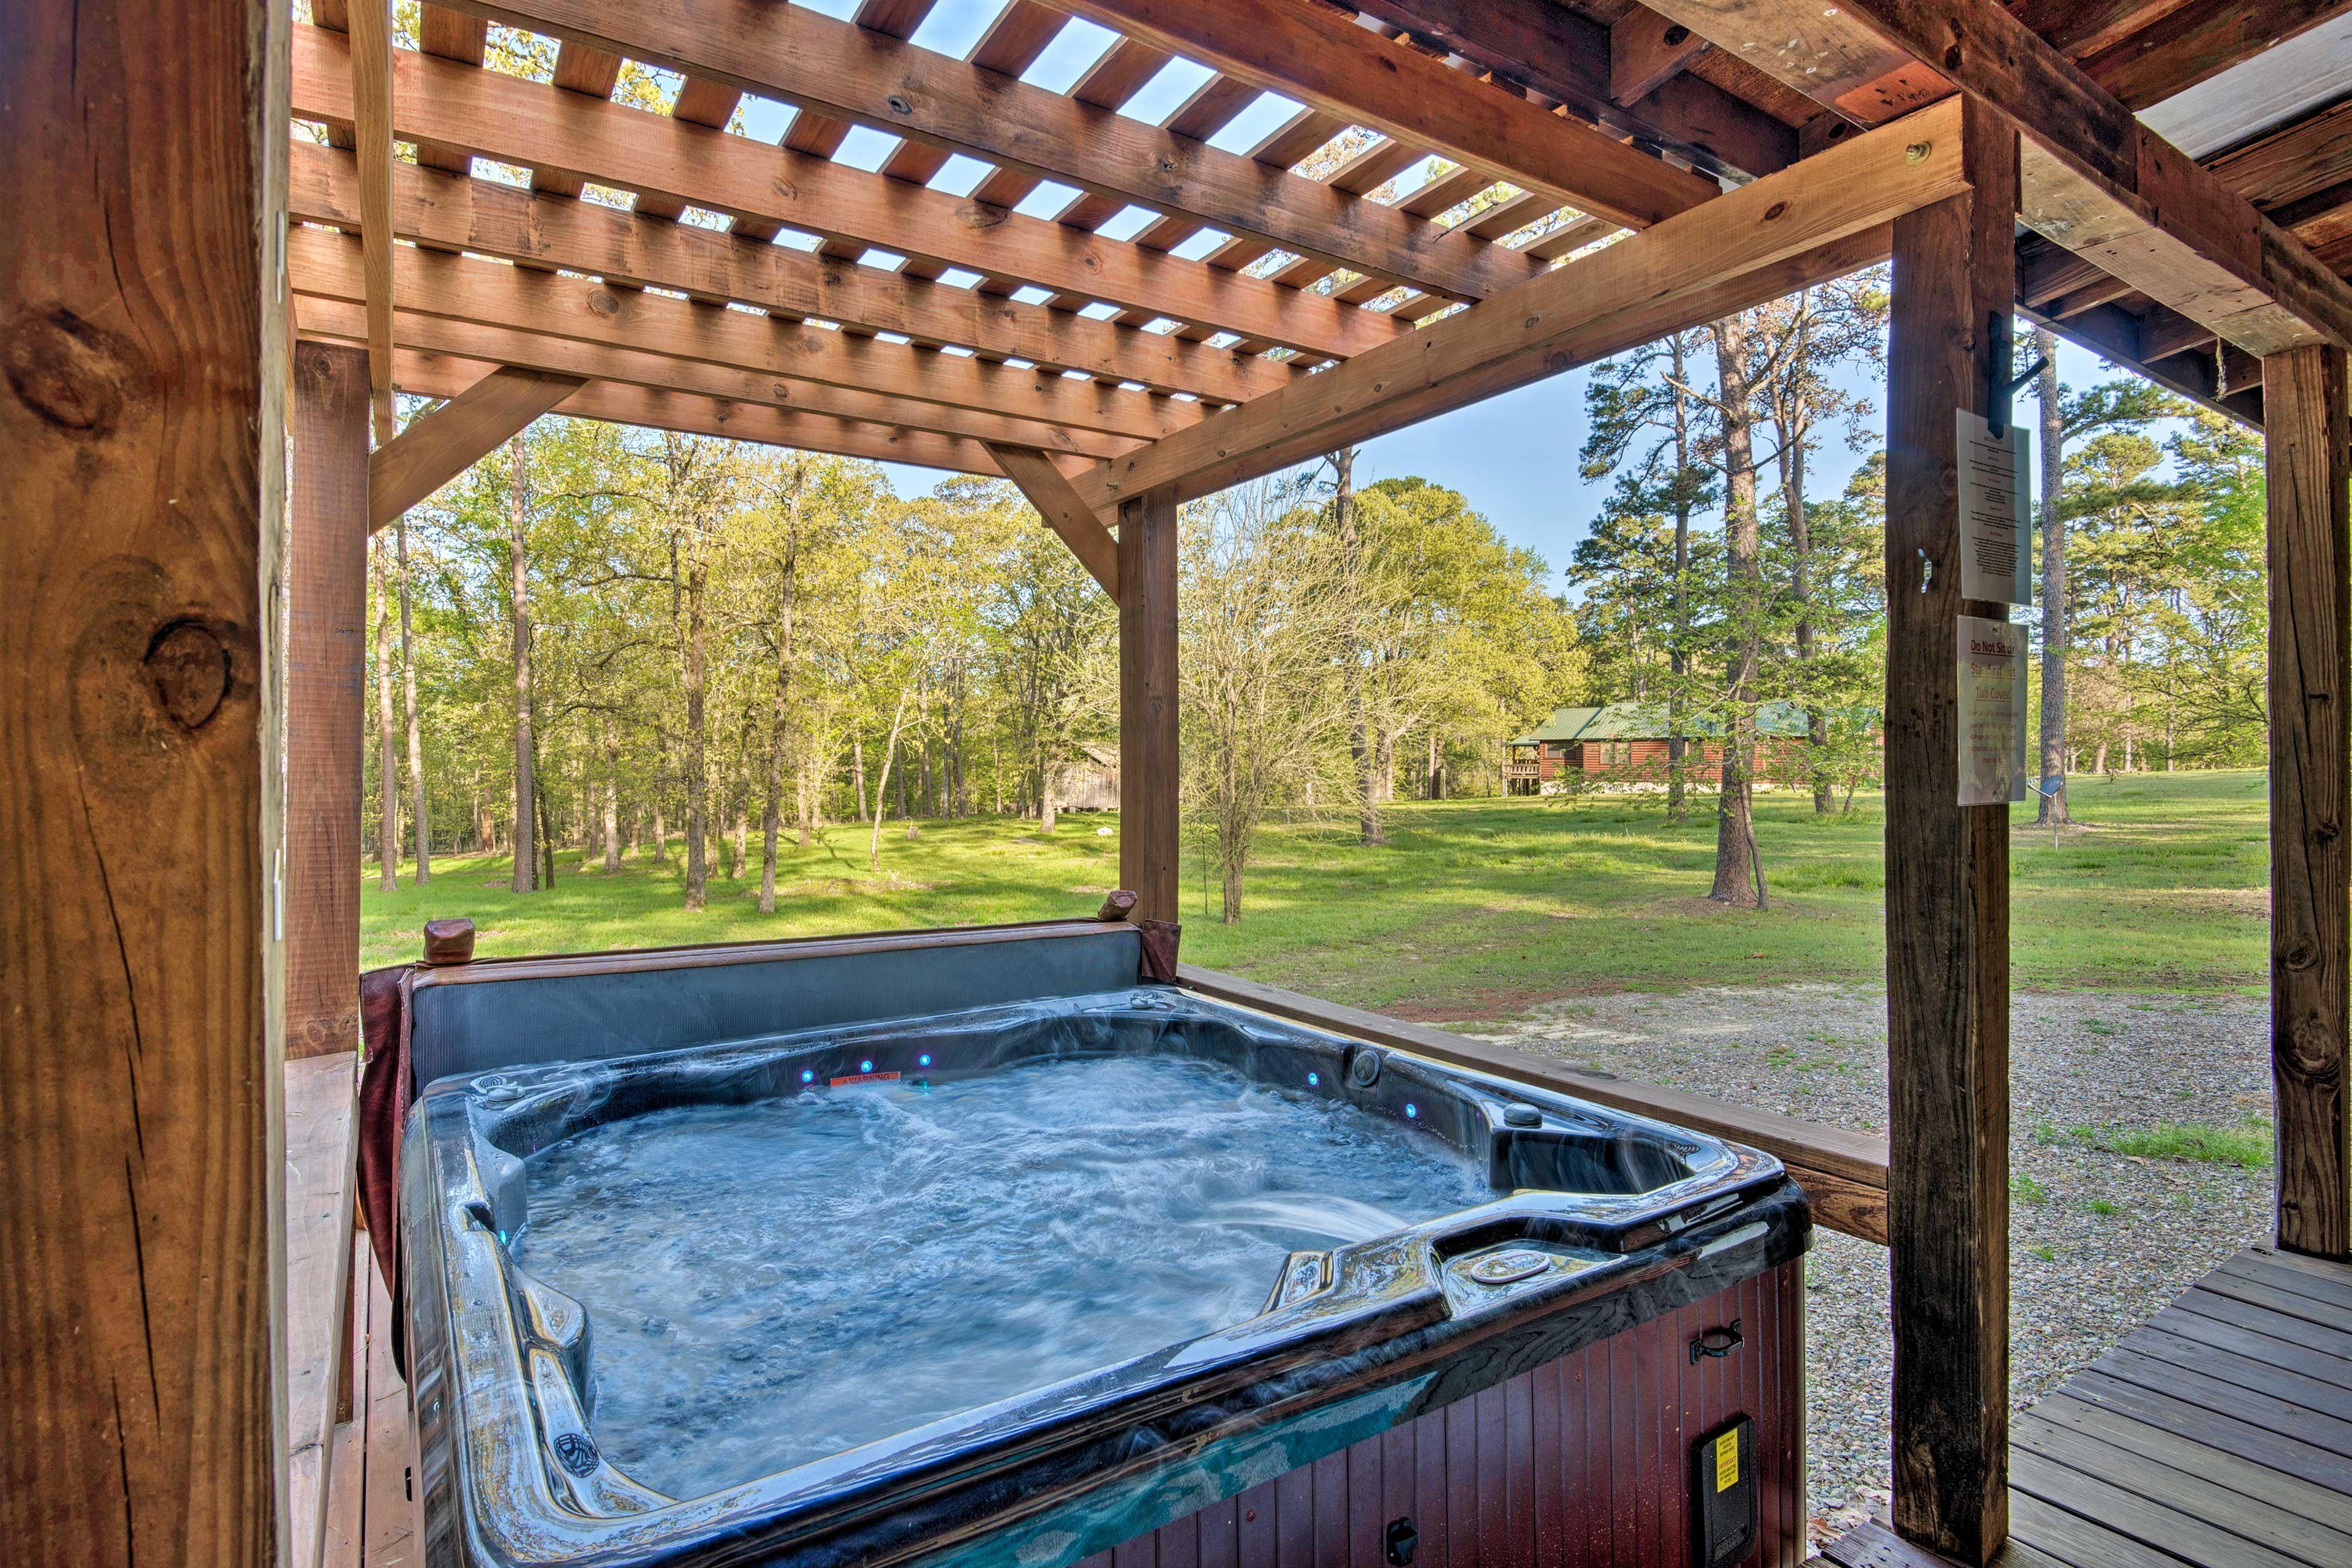 Soak away all of your cares in the cabin's private hot tub.